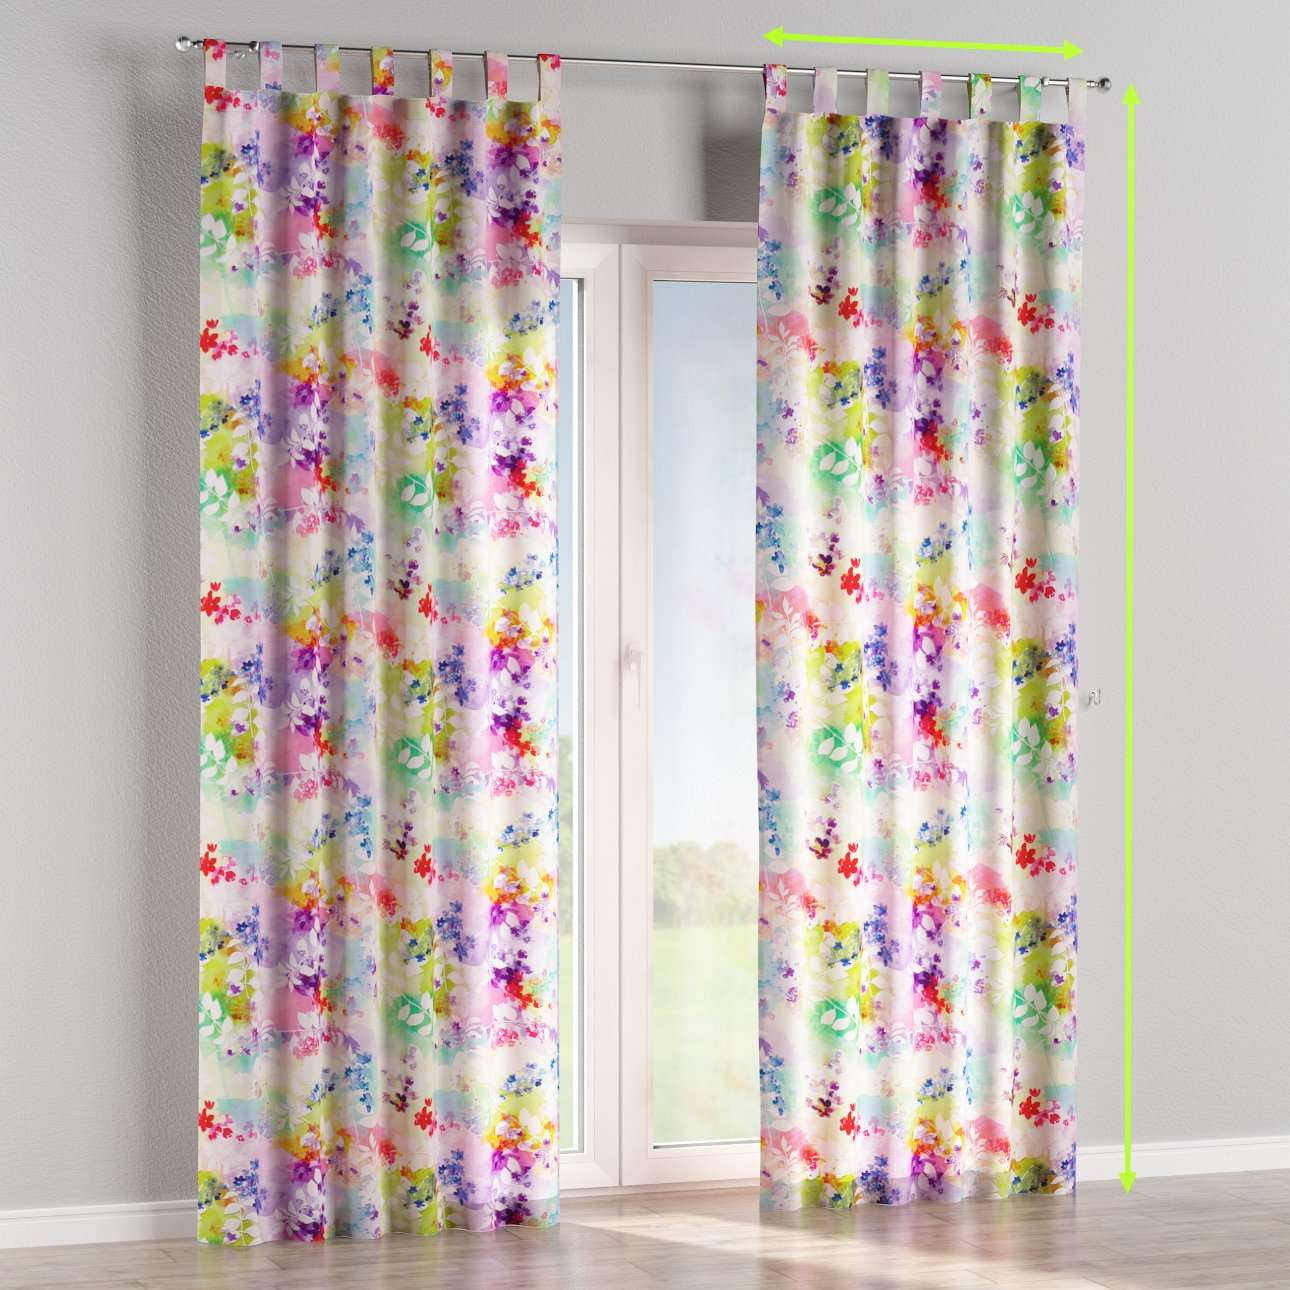 Tab top curtains in collection Monet, fabric: 140-07